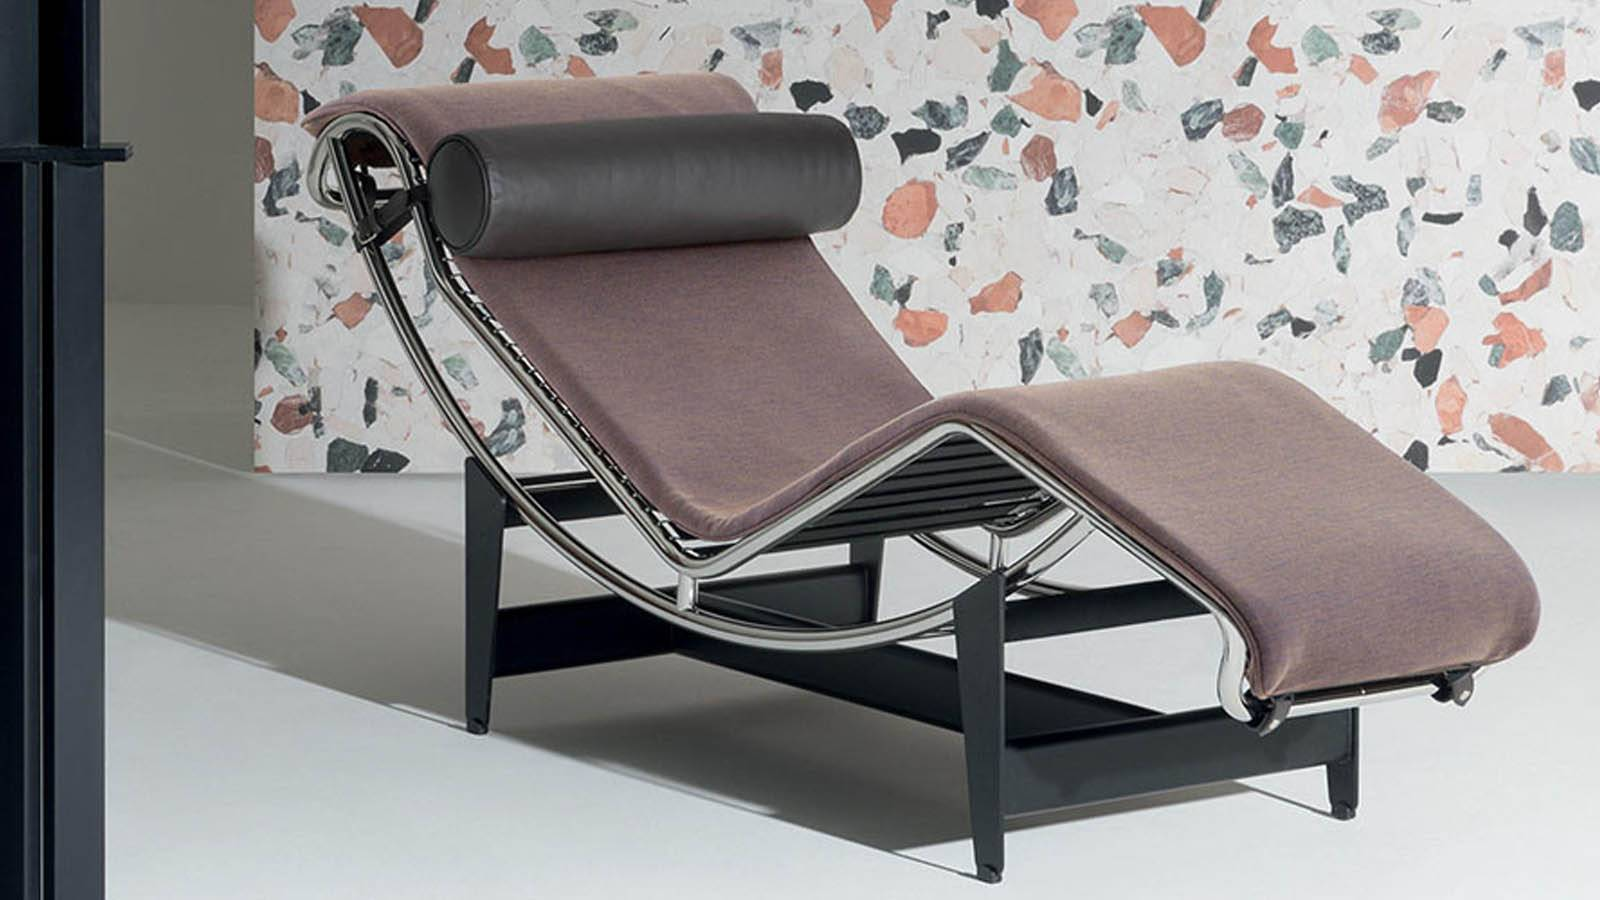 Design Armchair: chaise lounge LC4 by Cassina in a living room